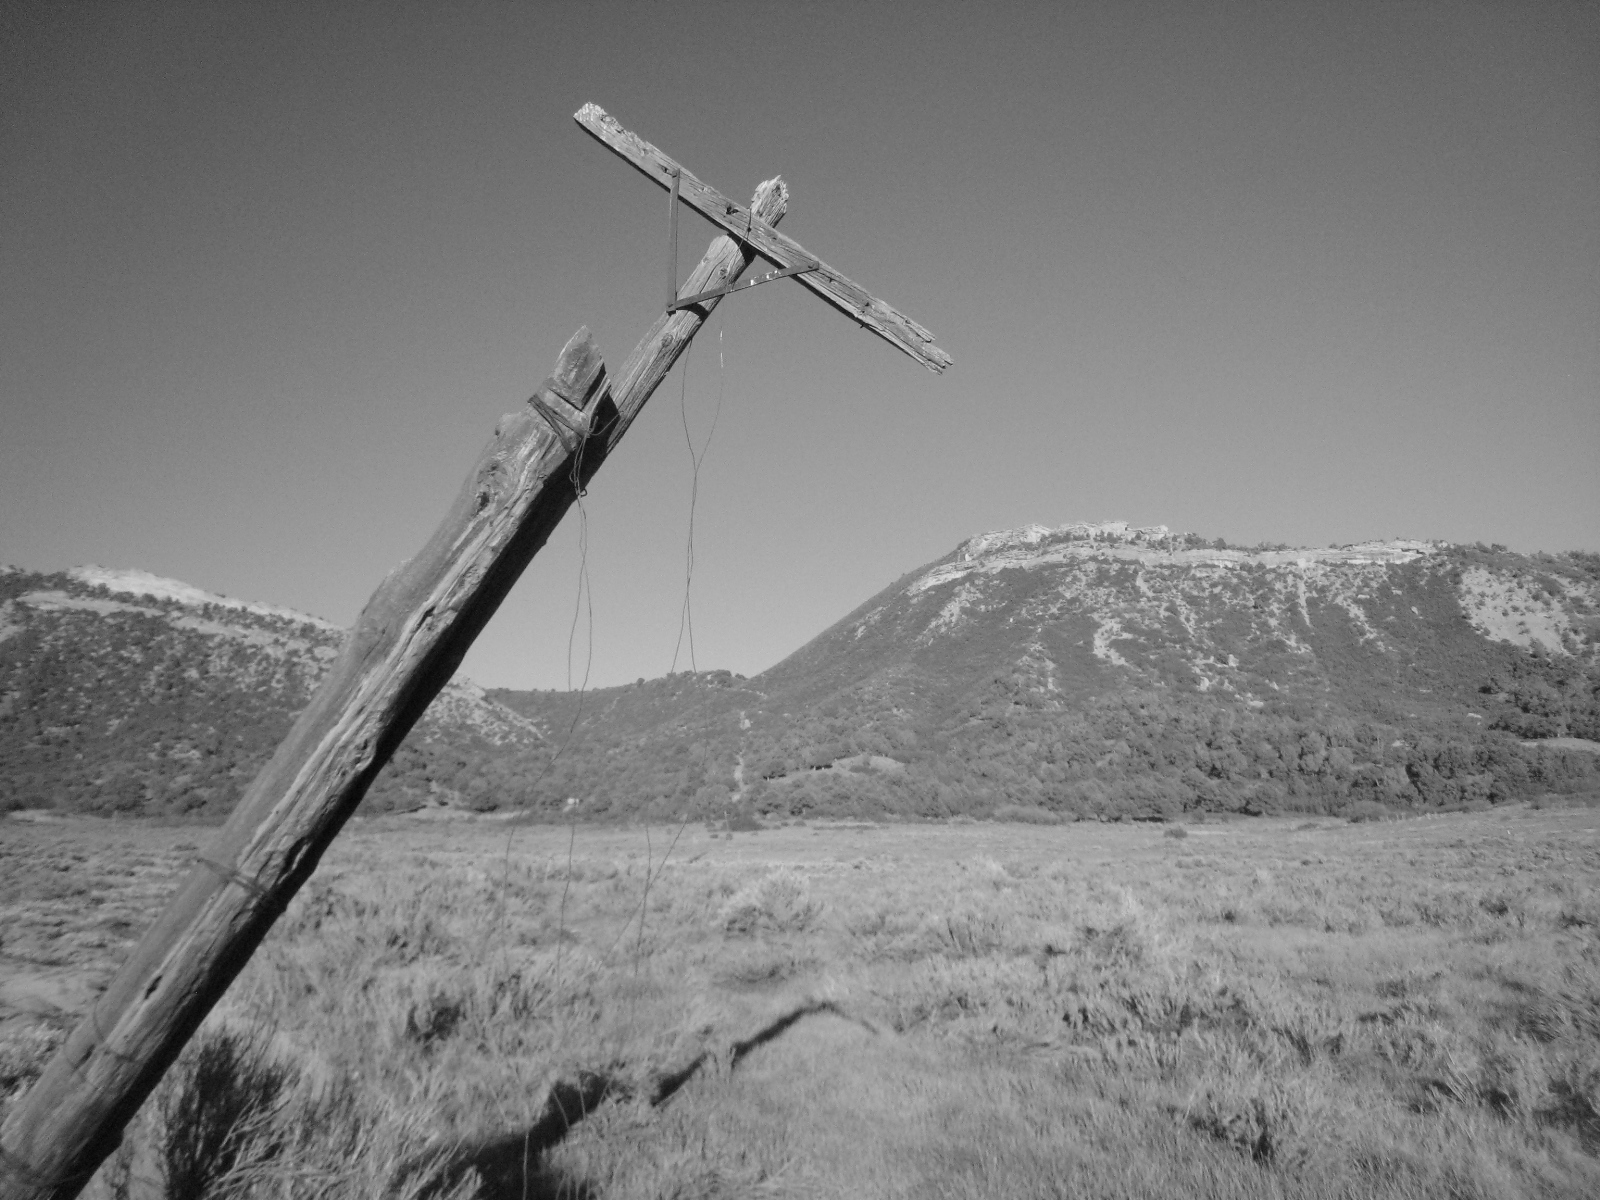 Horse Gulch Blog » Blog Archive The history behind Telegraph Trail